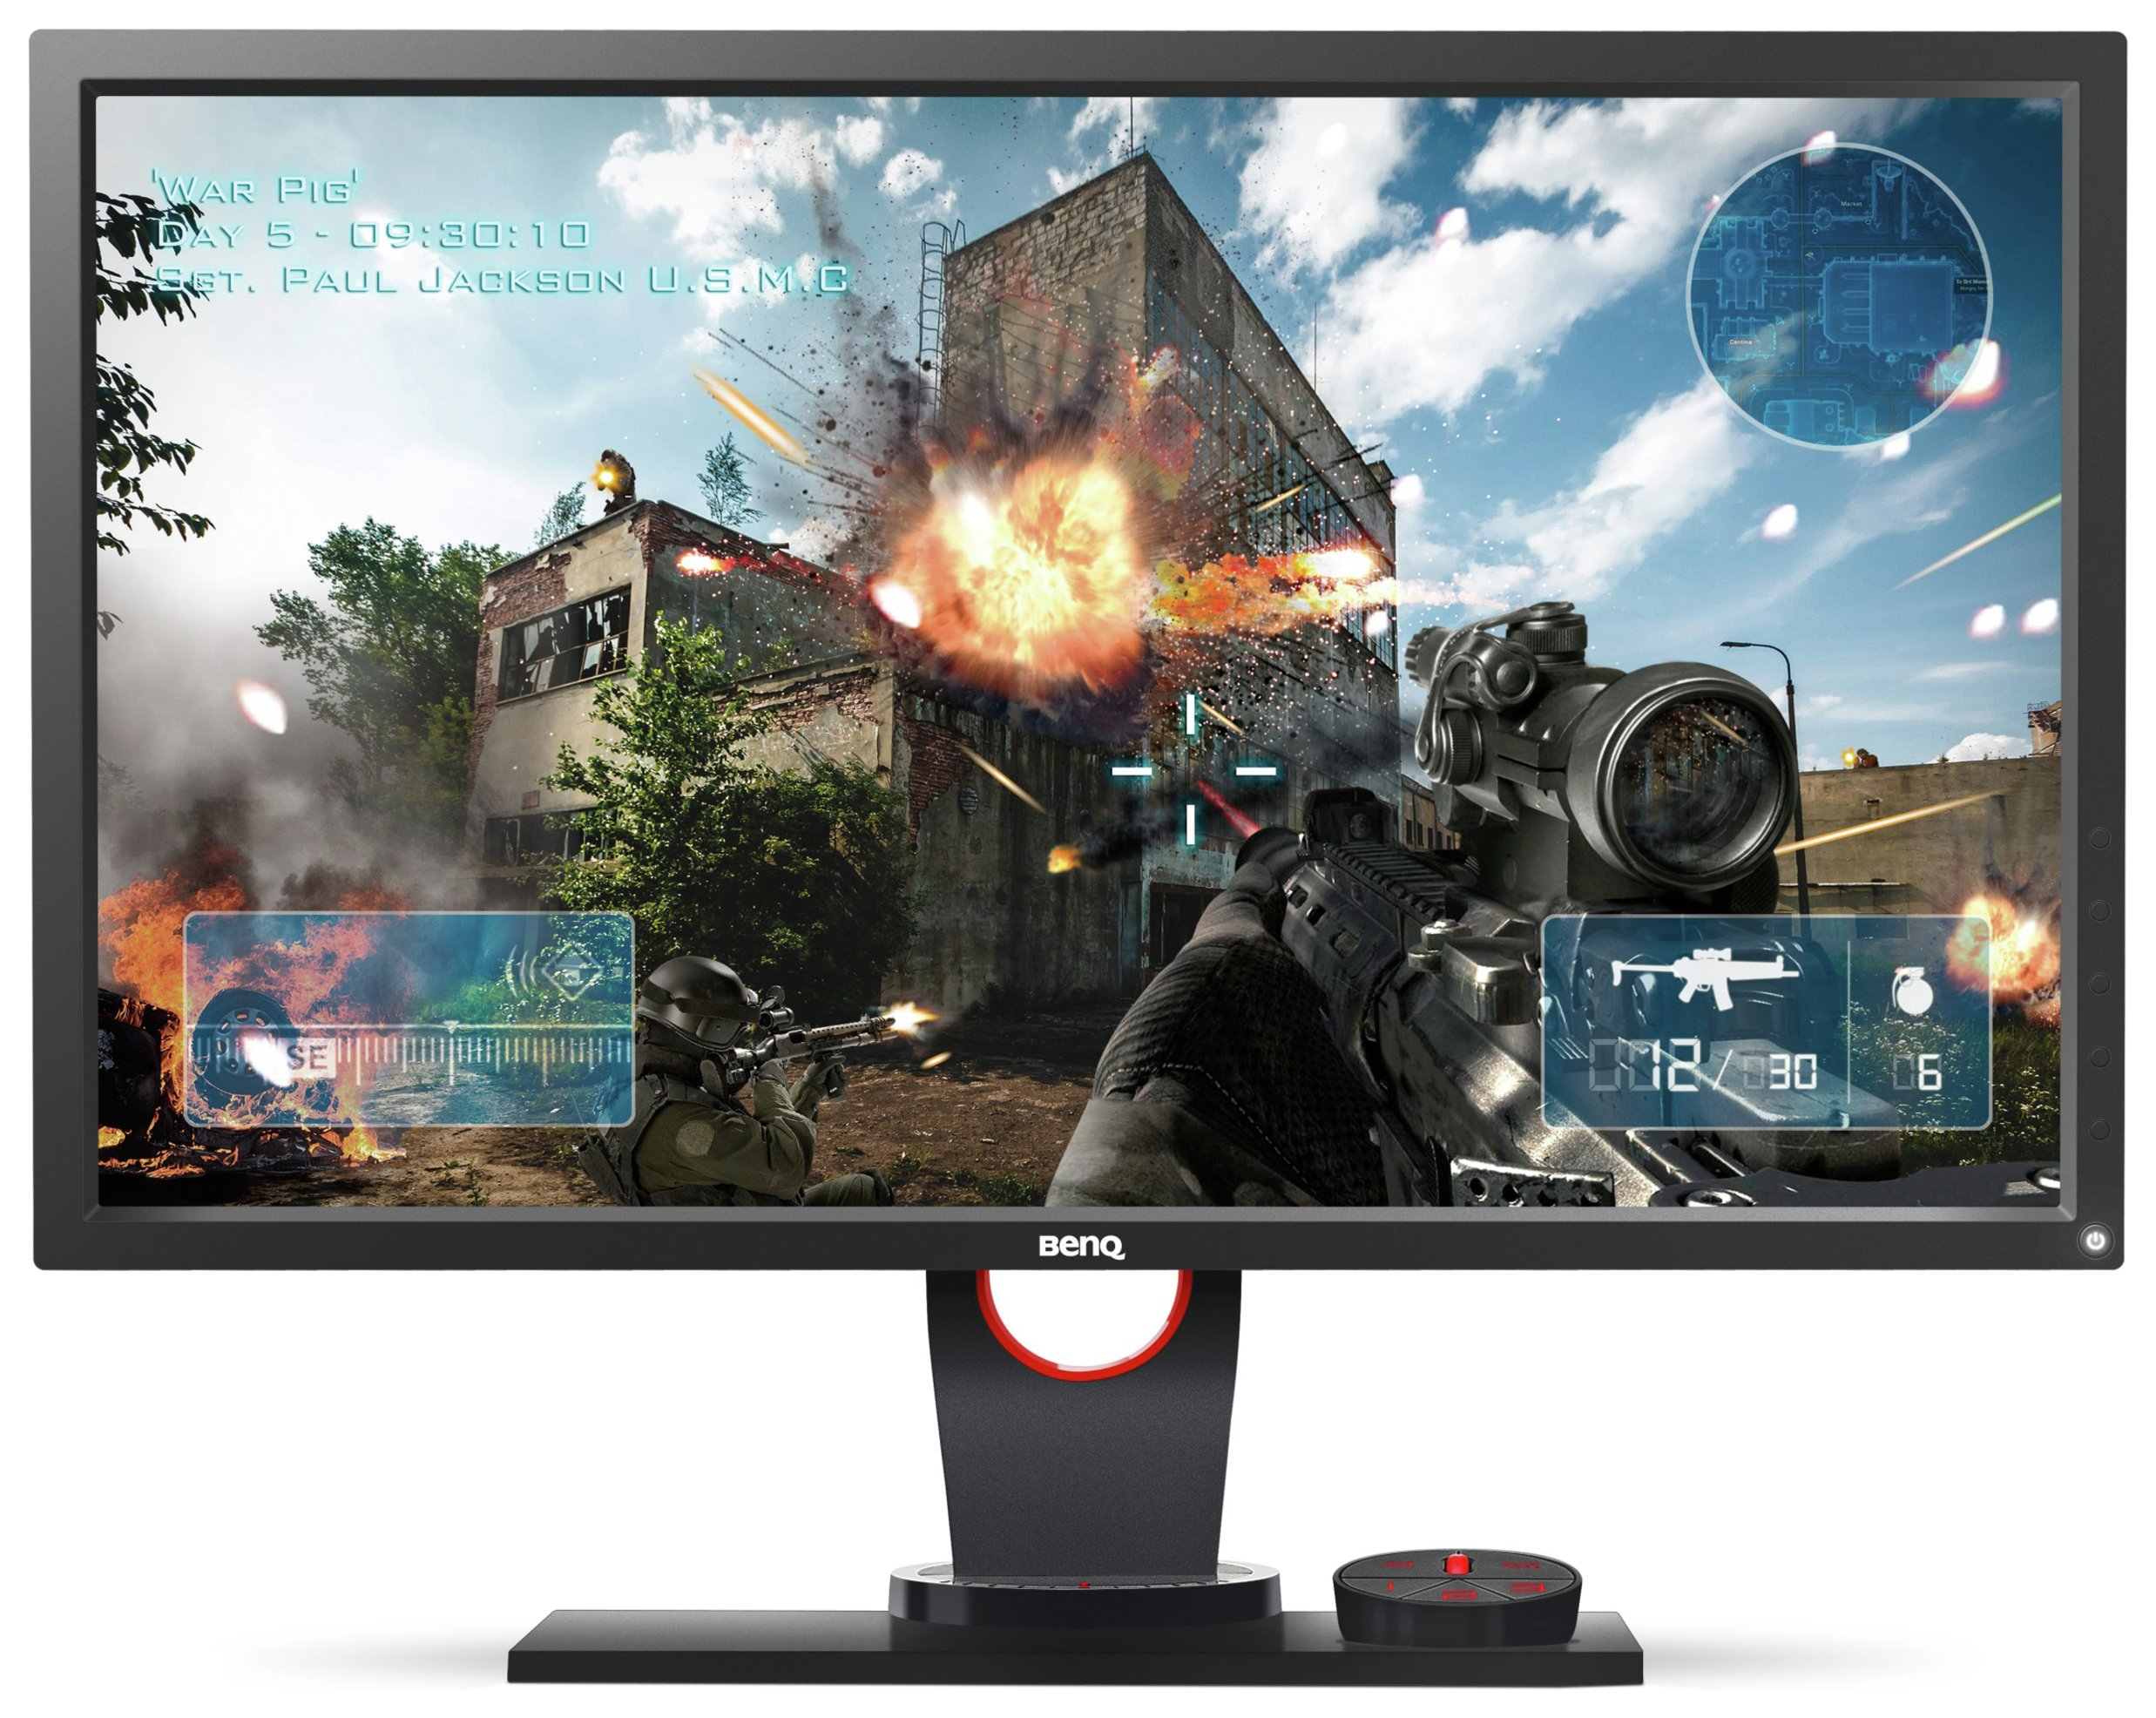 Image of BenQ Zowie XL2430 24 Inch Gaming PC Monitor.